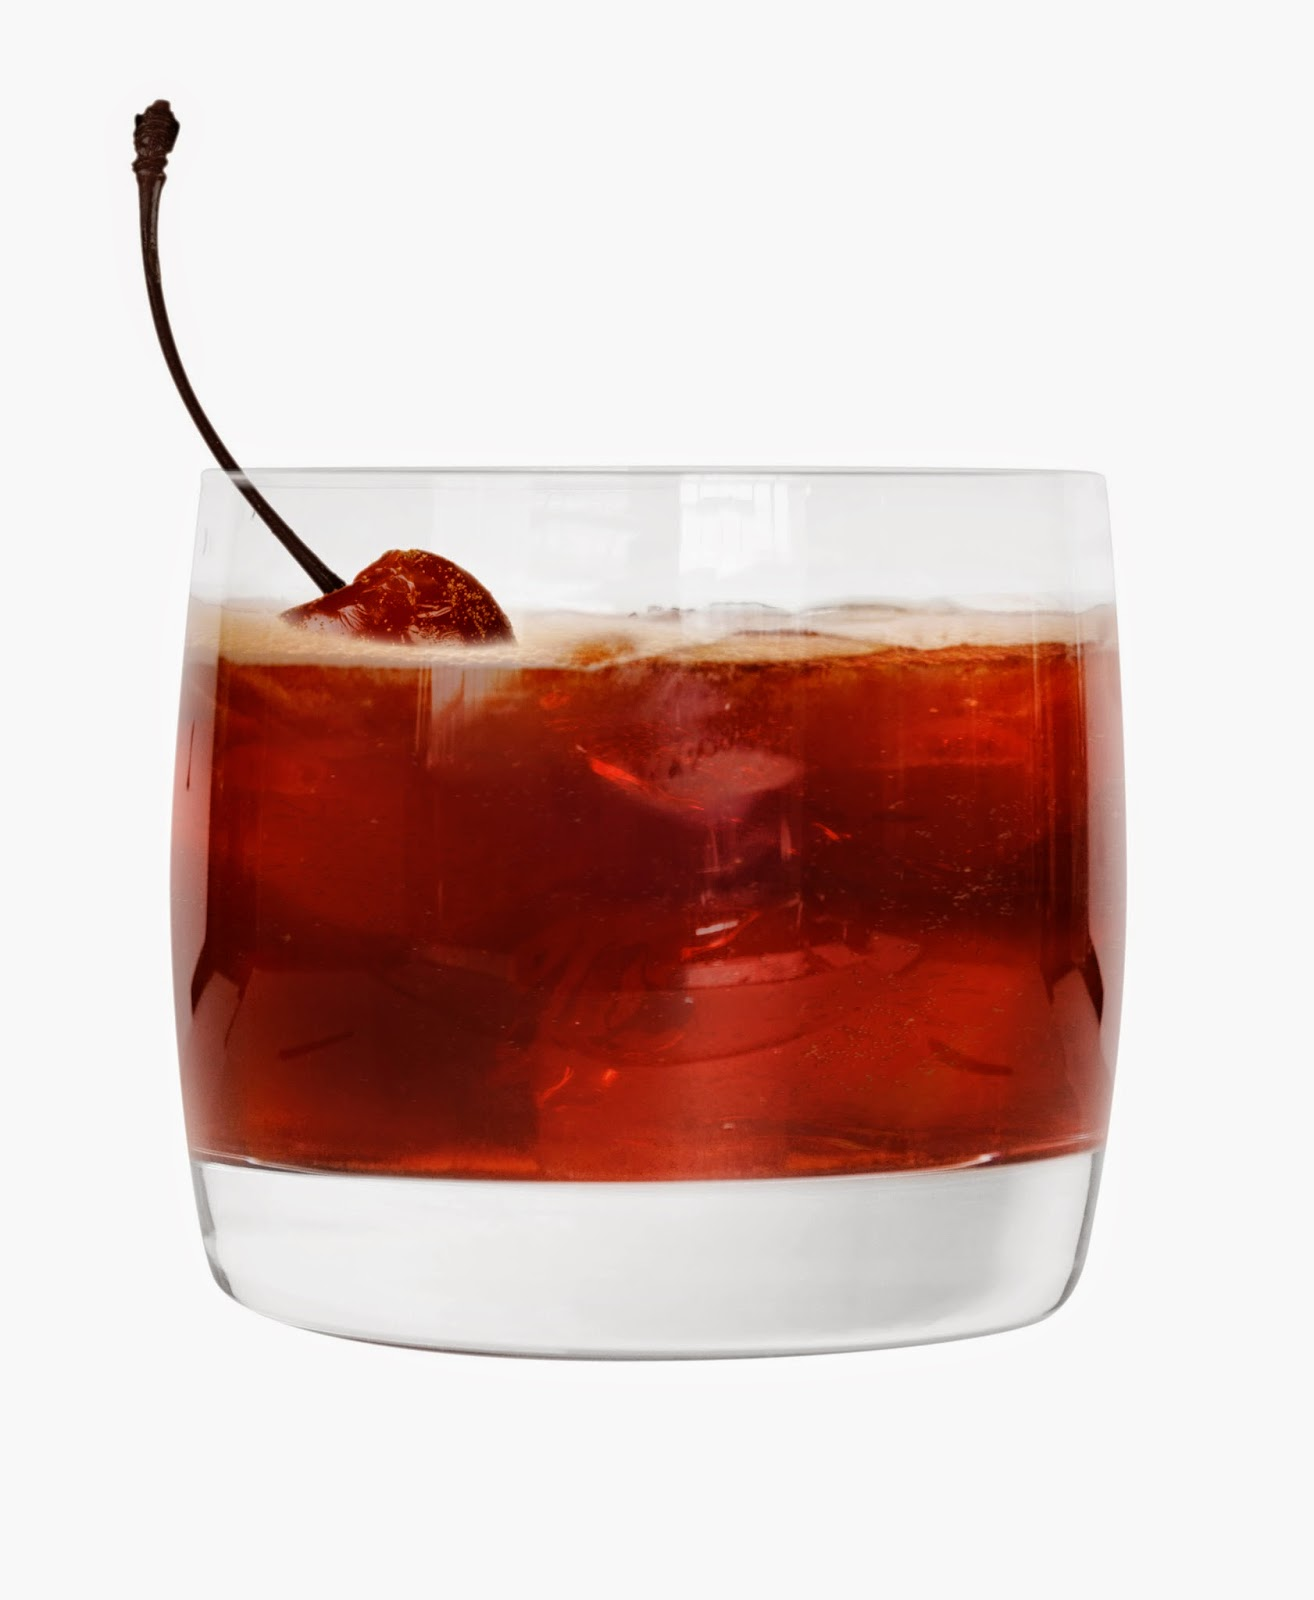 Hasil Haydens Valentine's Cocktail for National Cherry Month